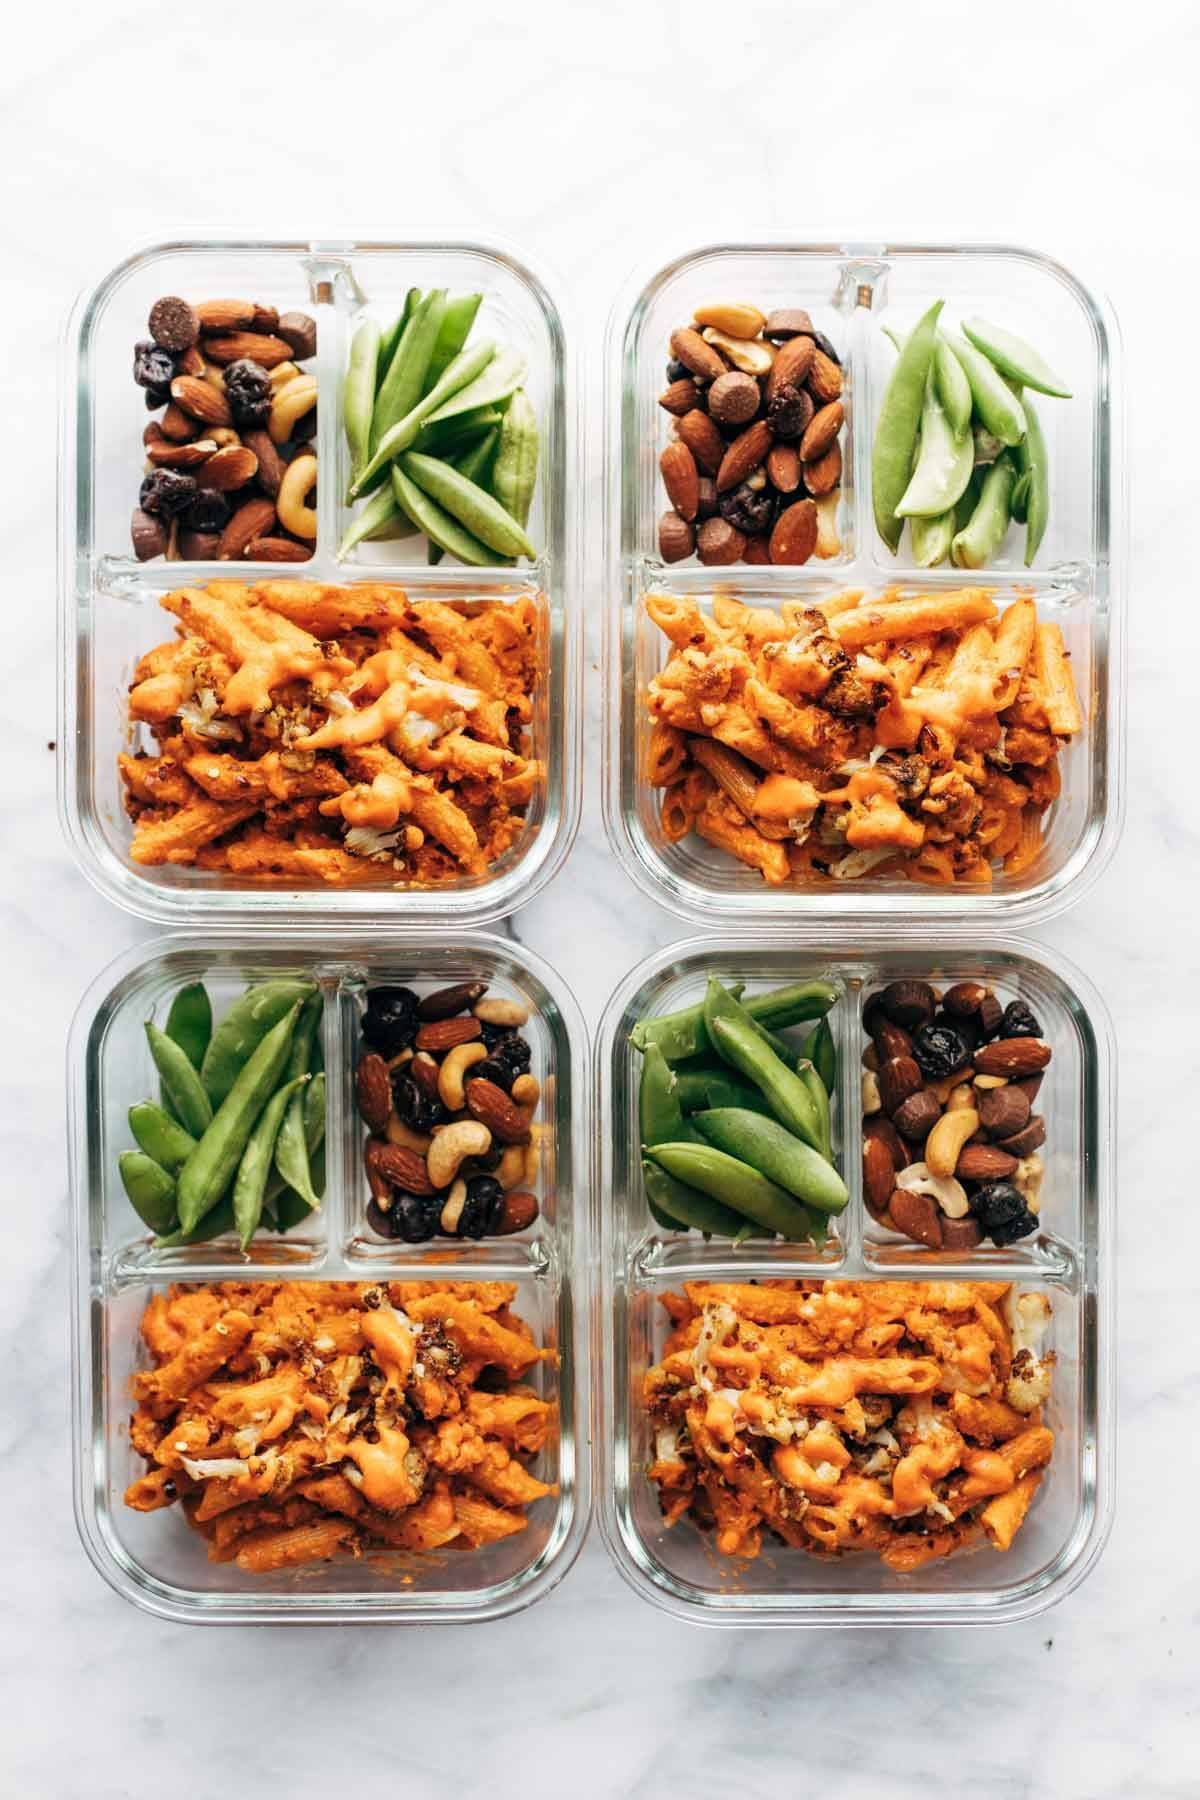 Red Pepper Cashew Pasta in meal prep containers.